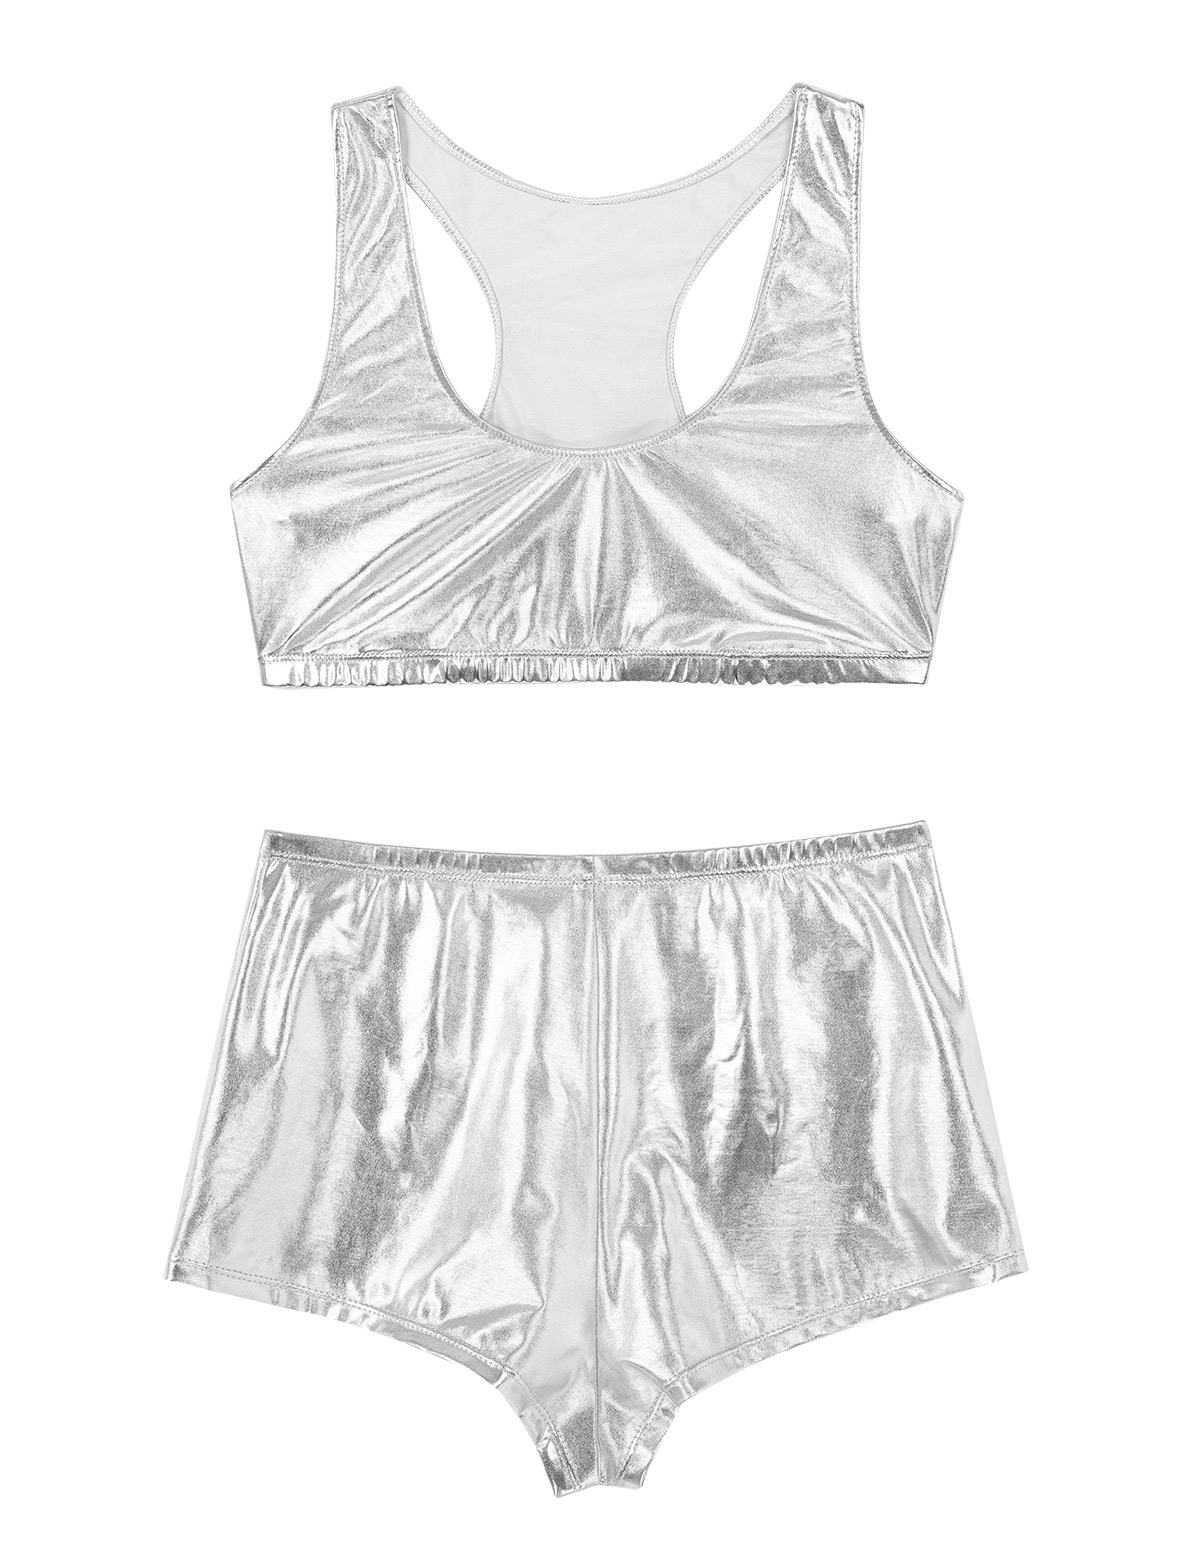 Women's 2-piece set made of faux leather msow